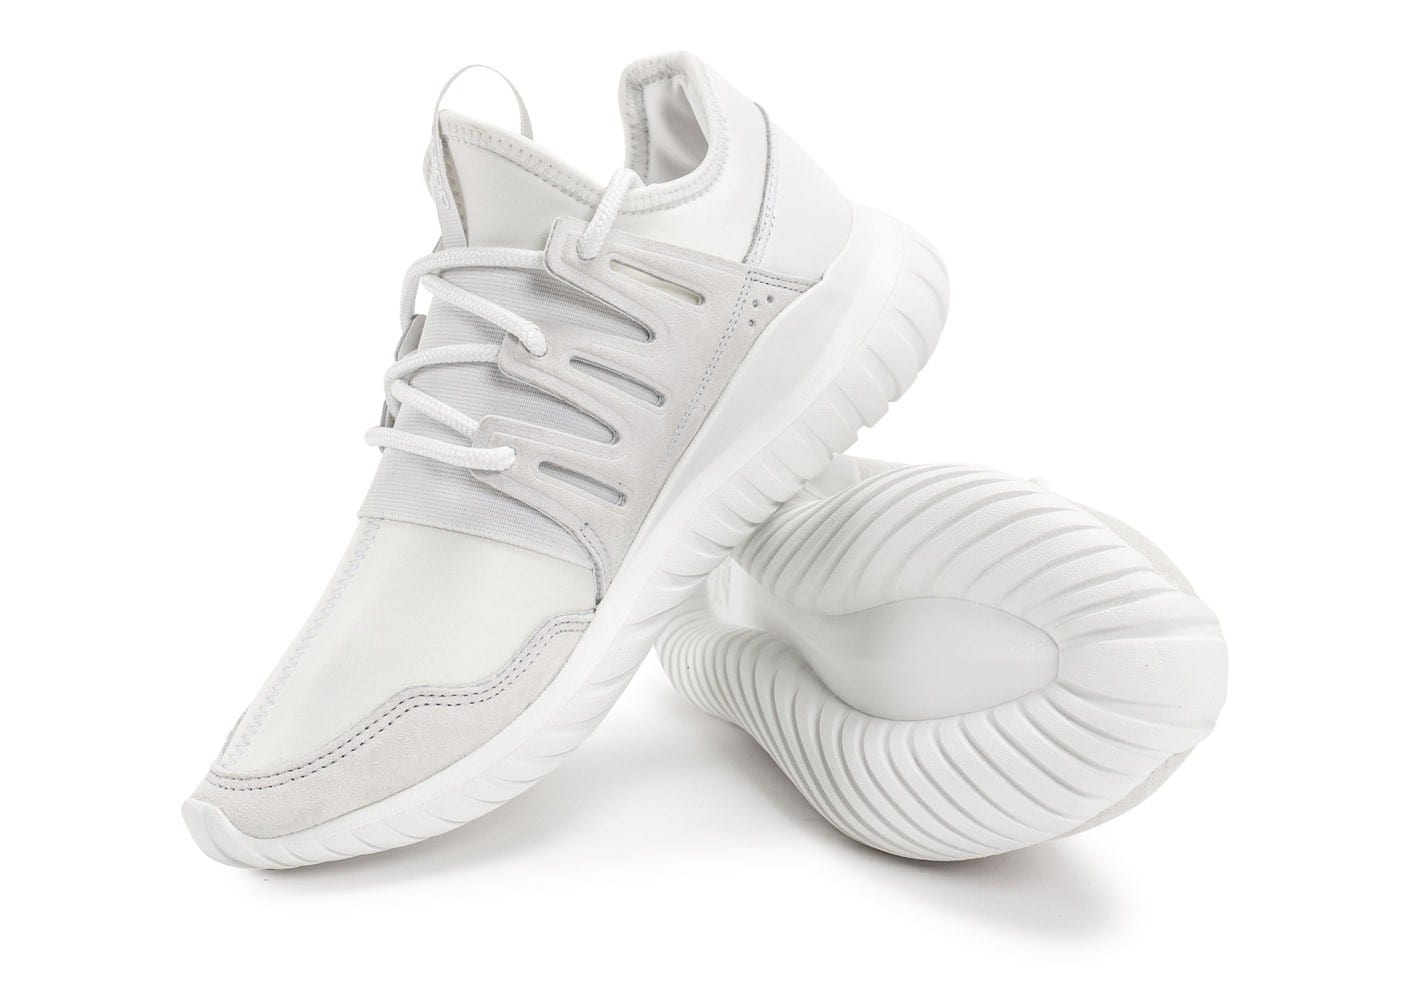 adidas Tubular Radial blanche - Chaussures